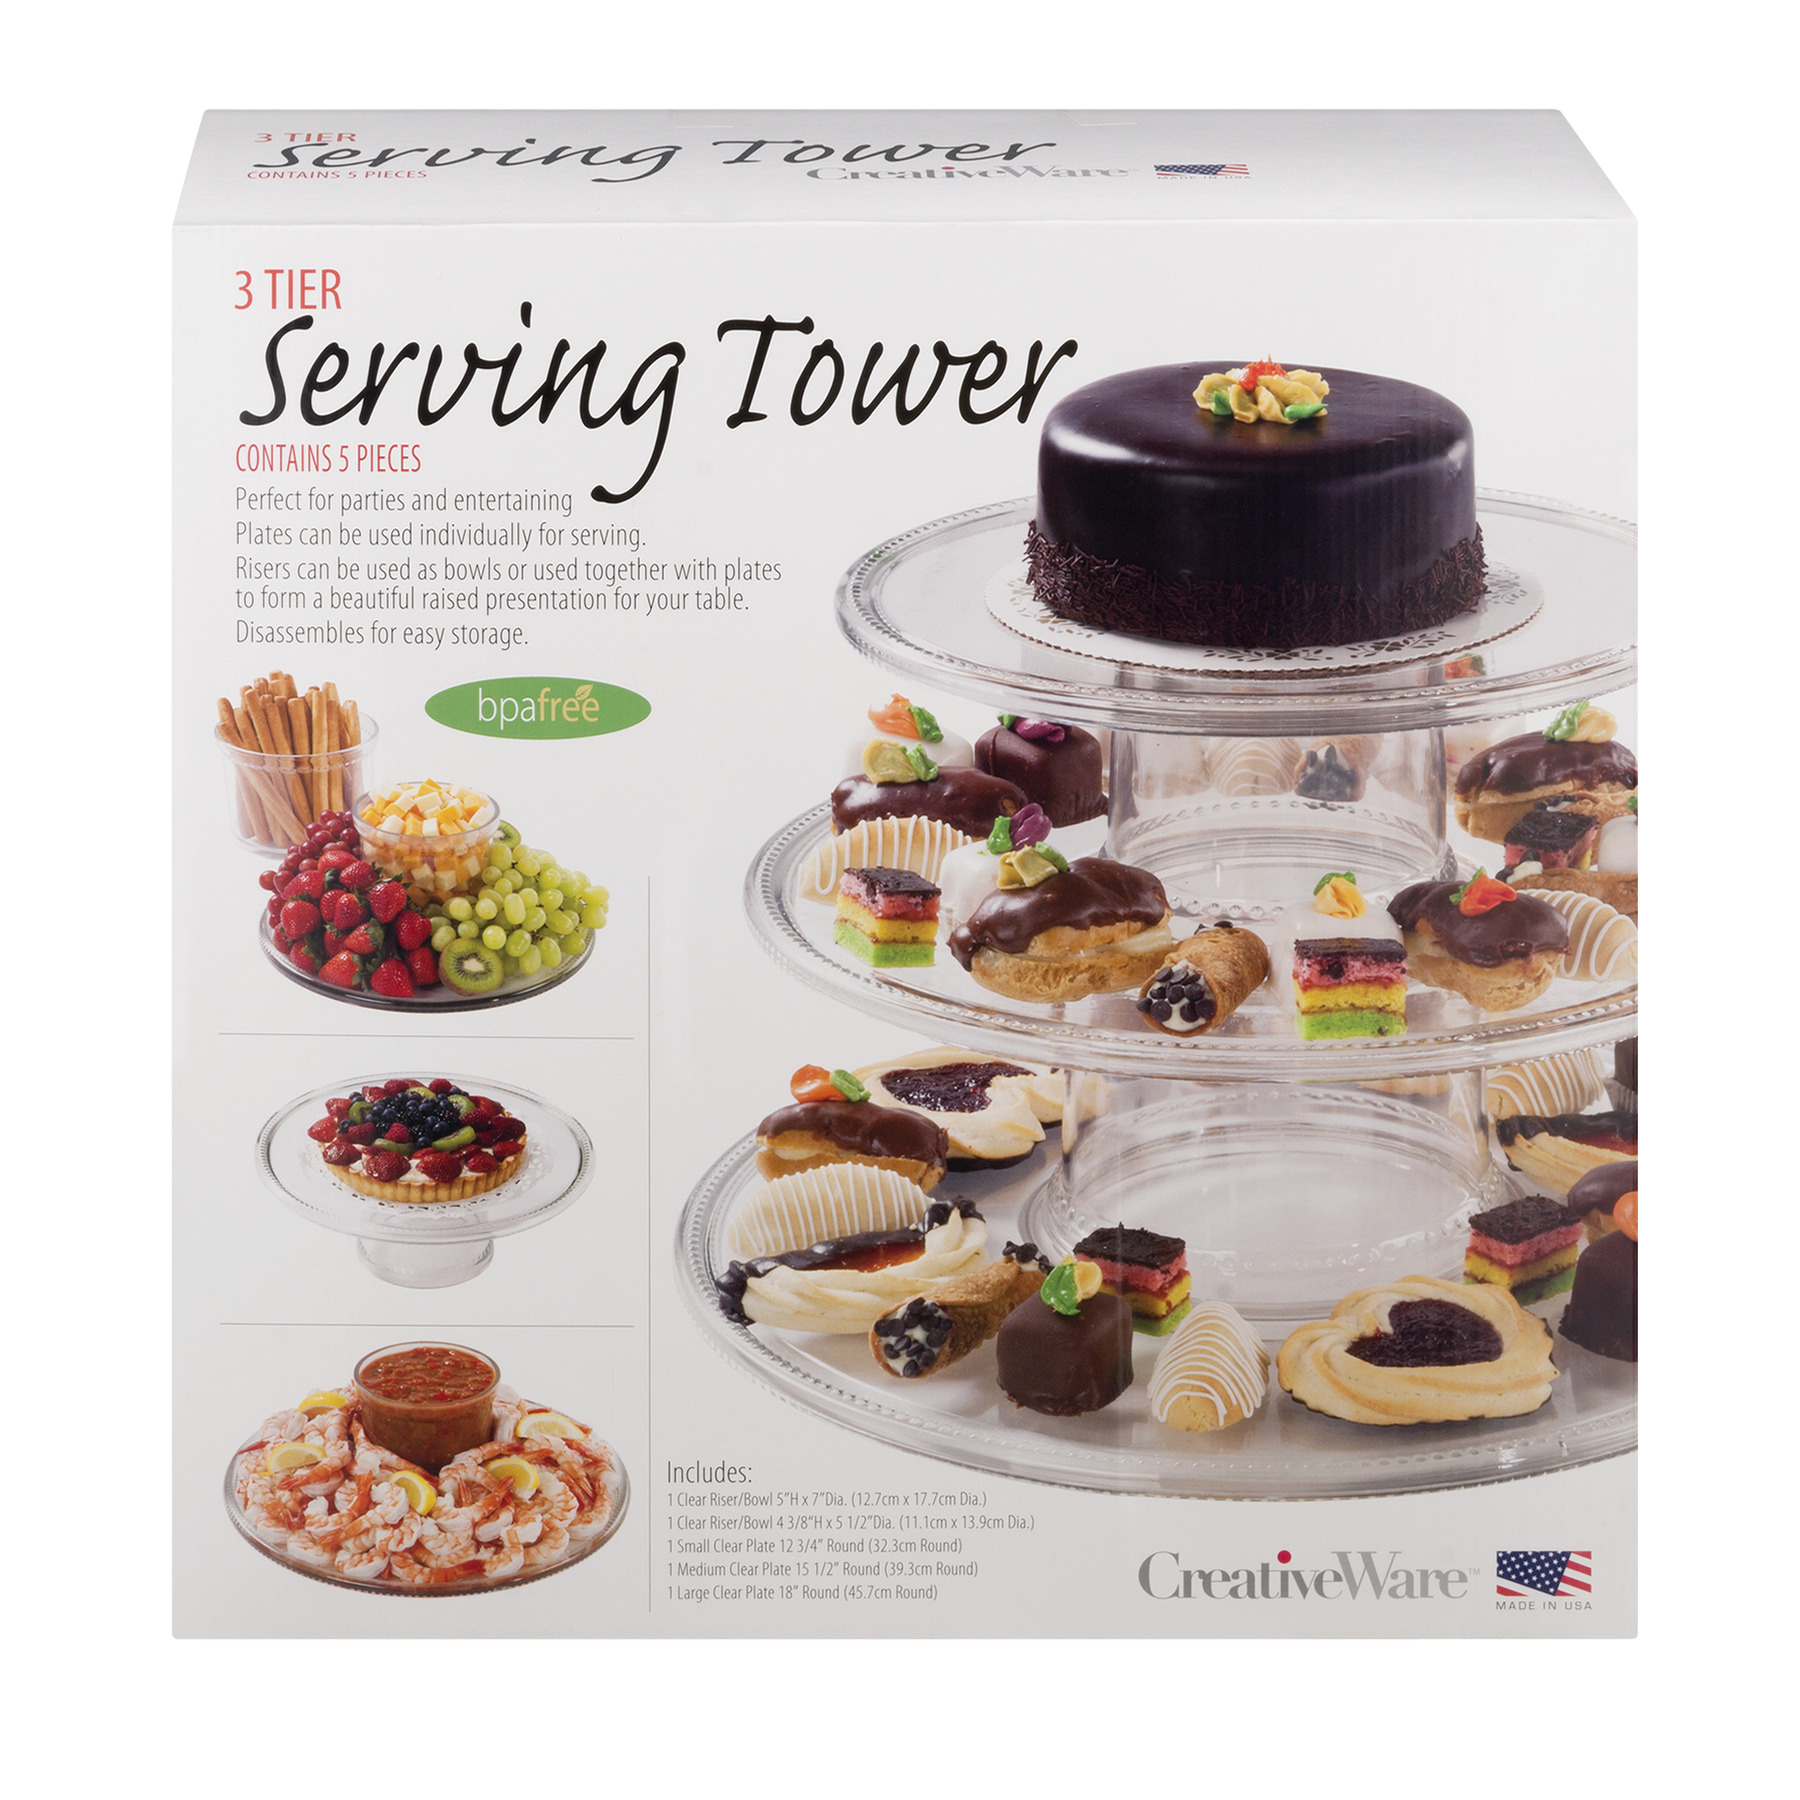 Creative Ware 3 Tier Serving Tower - 5 PC, 5.0 PIECE(S)